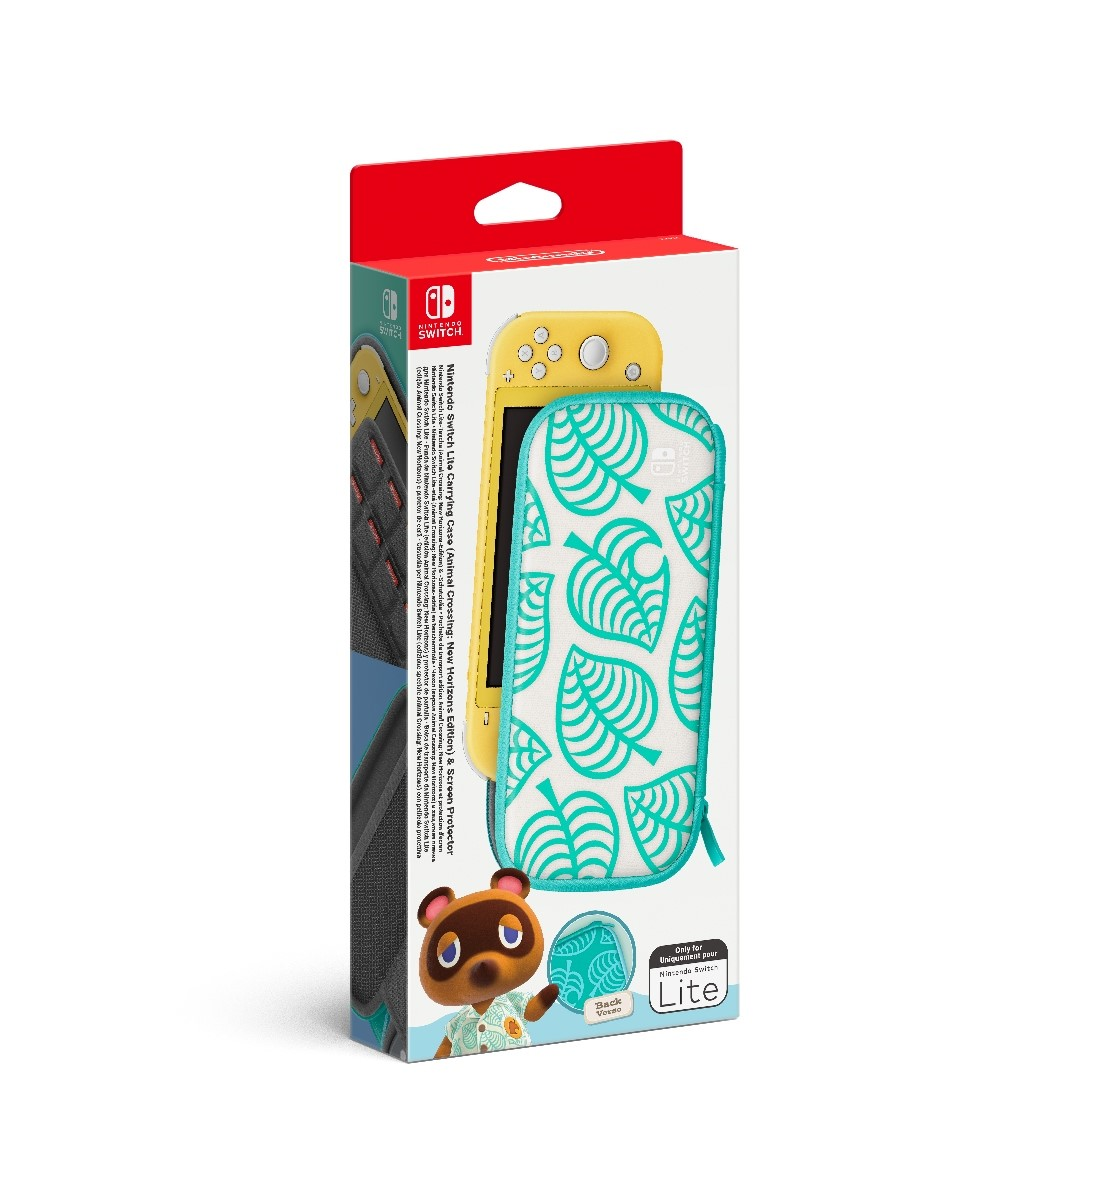 More Photos Of The Animal Crossing Themed Switch System And